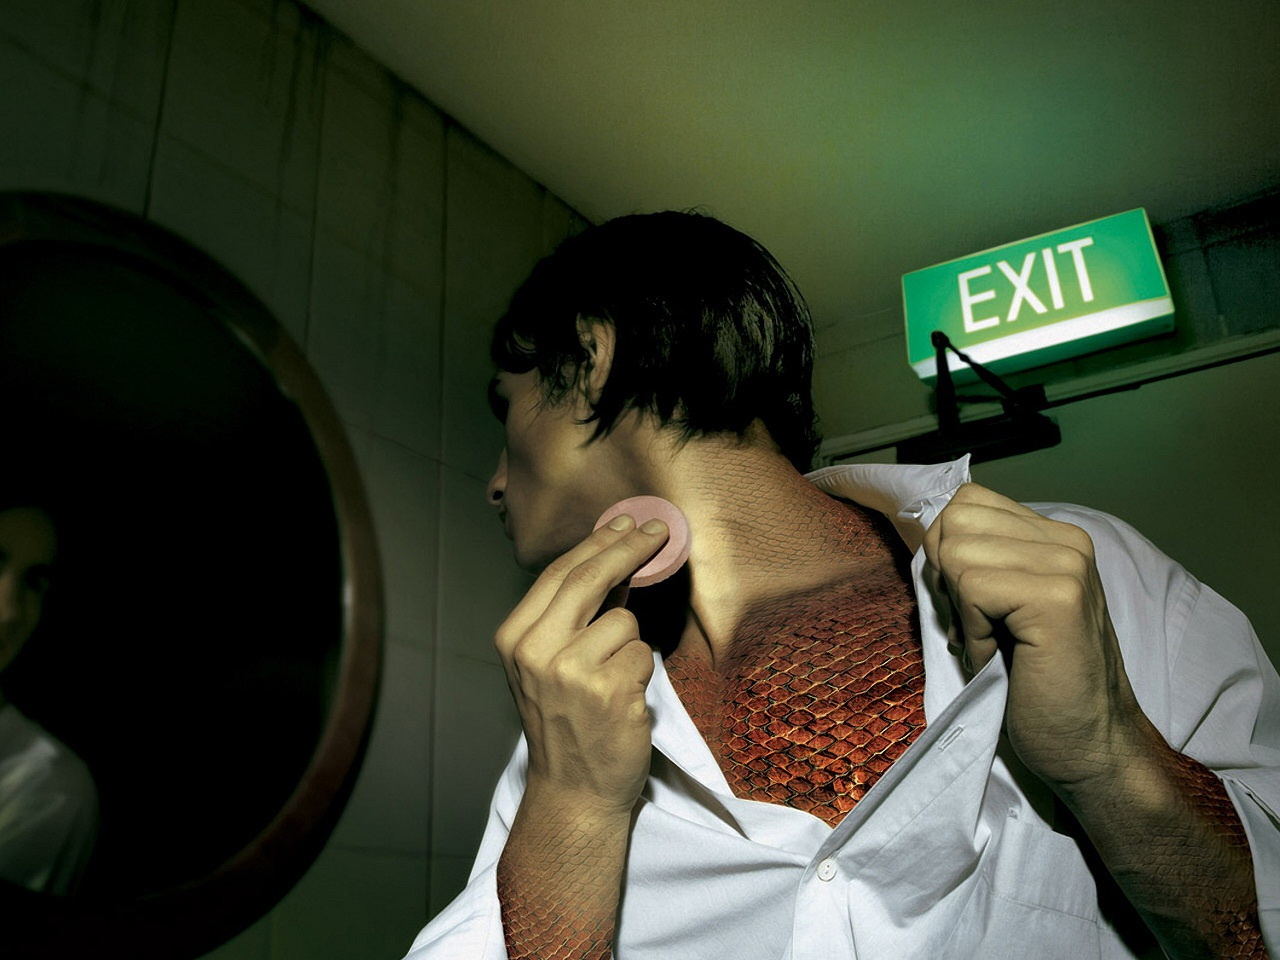 1280x960 Man and exit sign